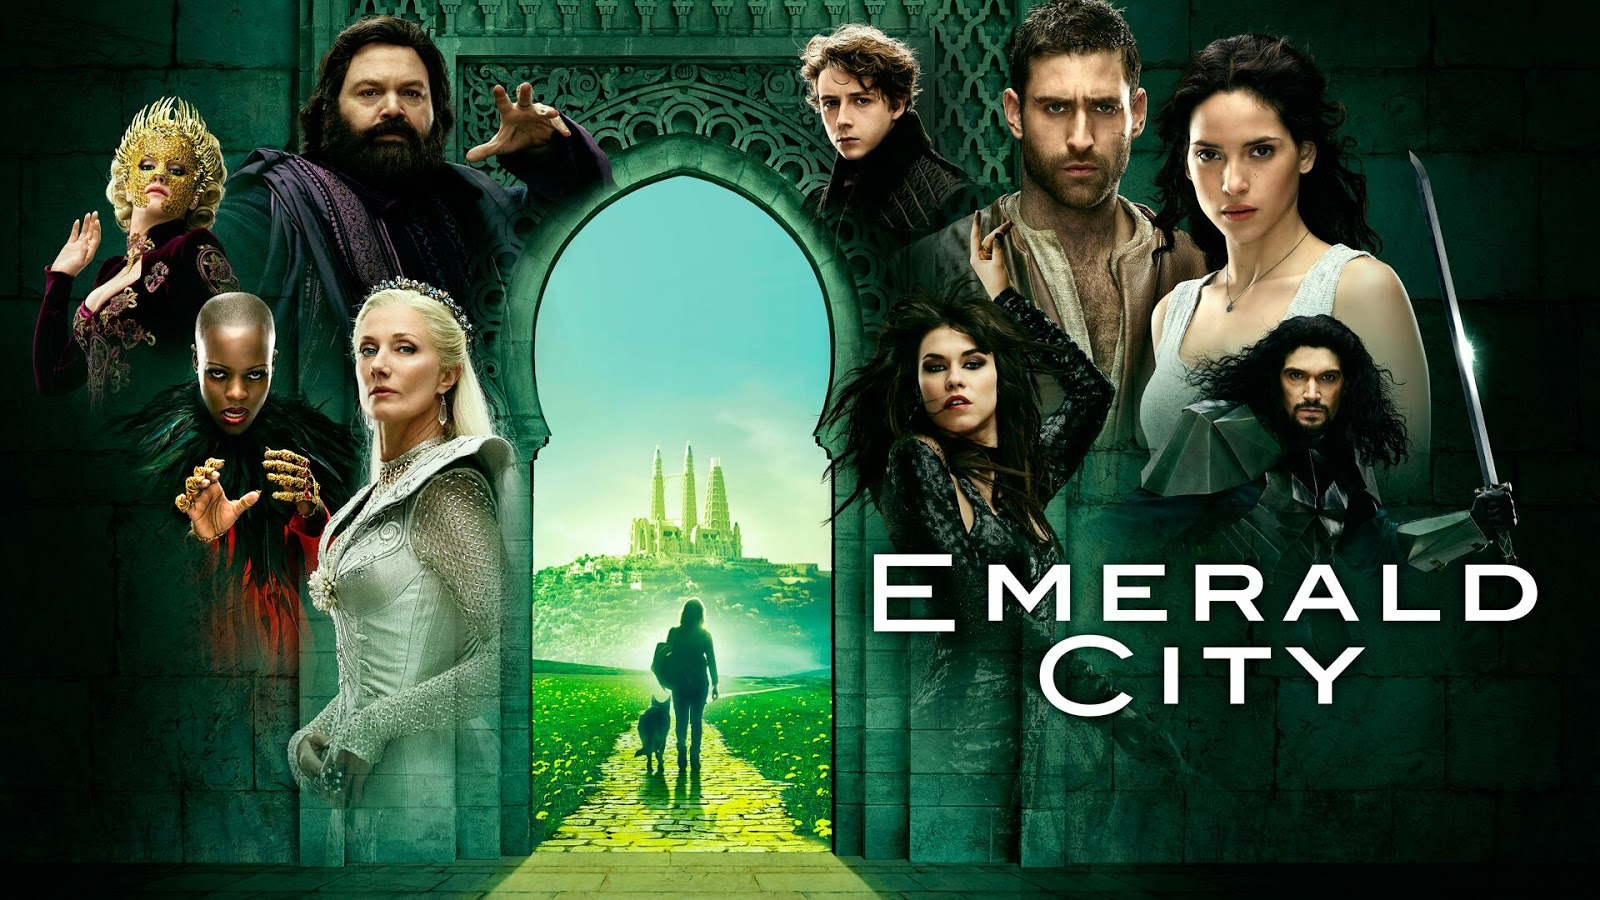 Emerald City cartel promocional